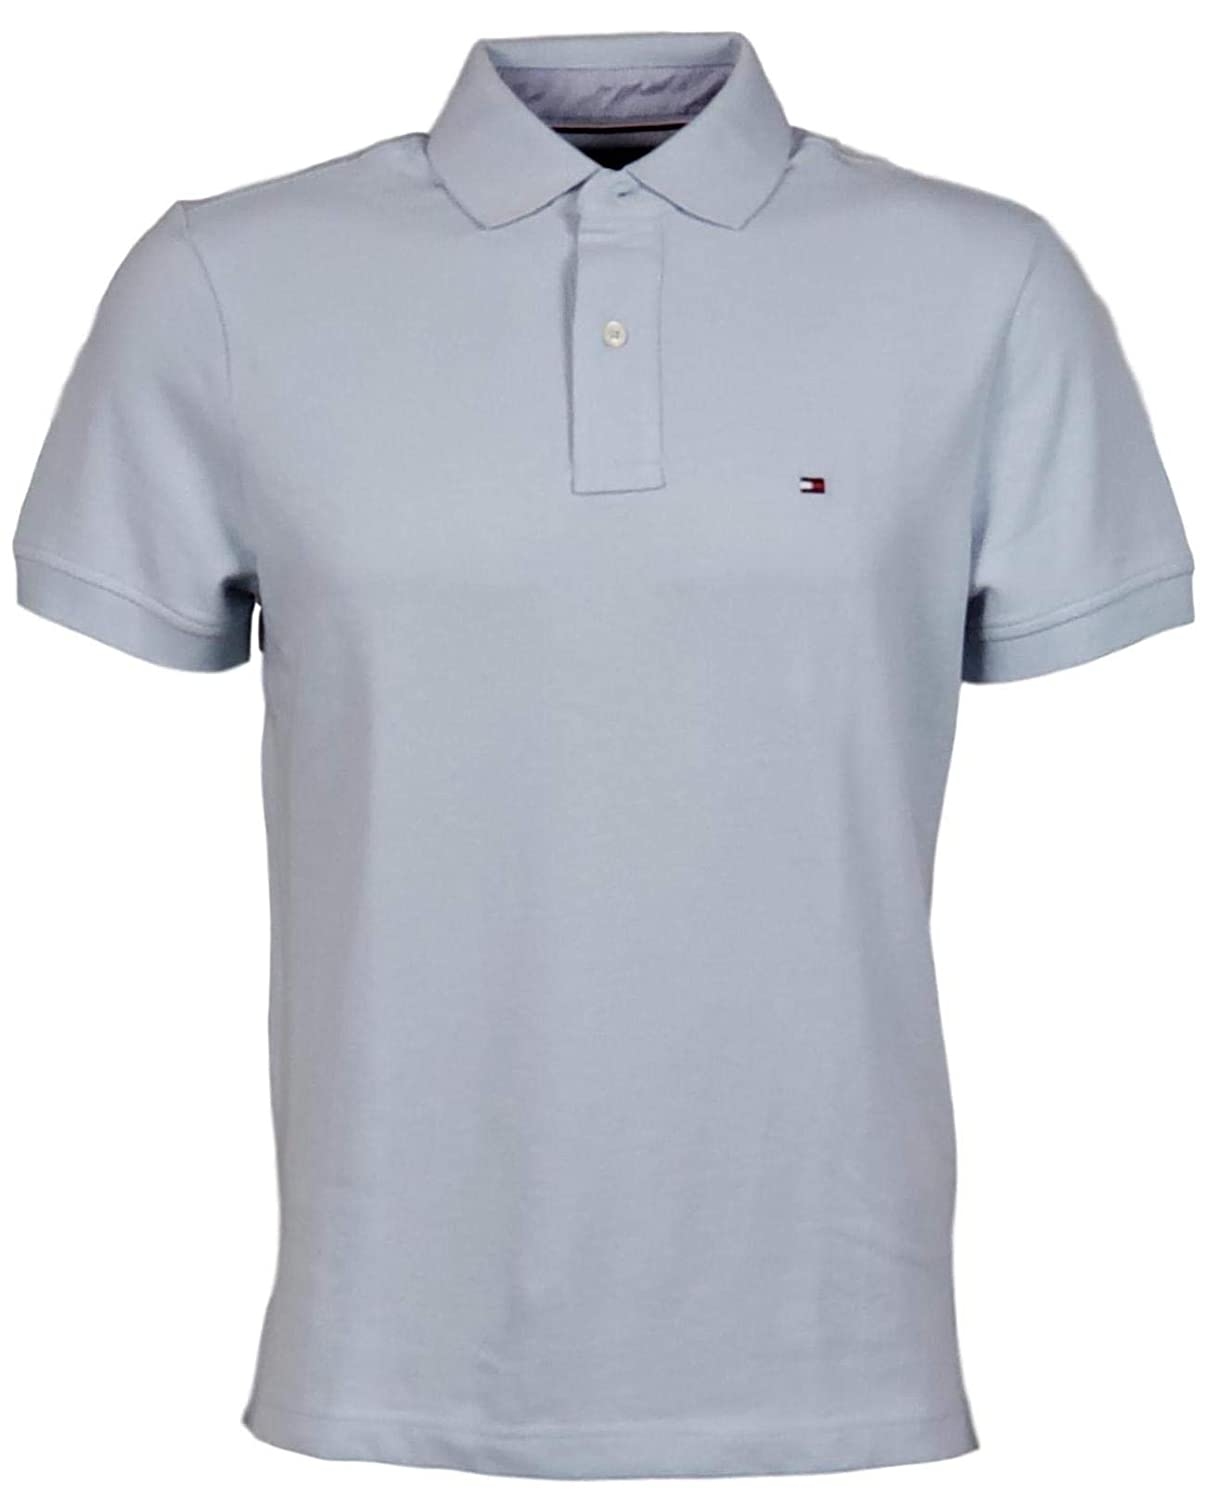 947a752c Tommy Hilfiger Men's Classic Fit Polo at Amazon Men's Clothing store: